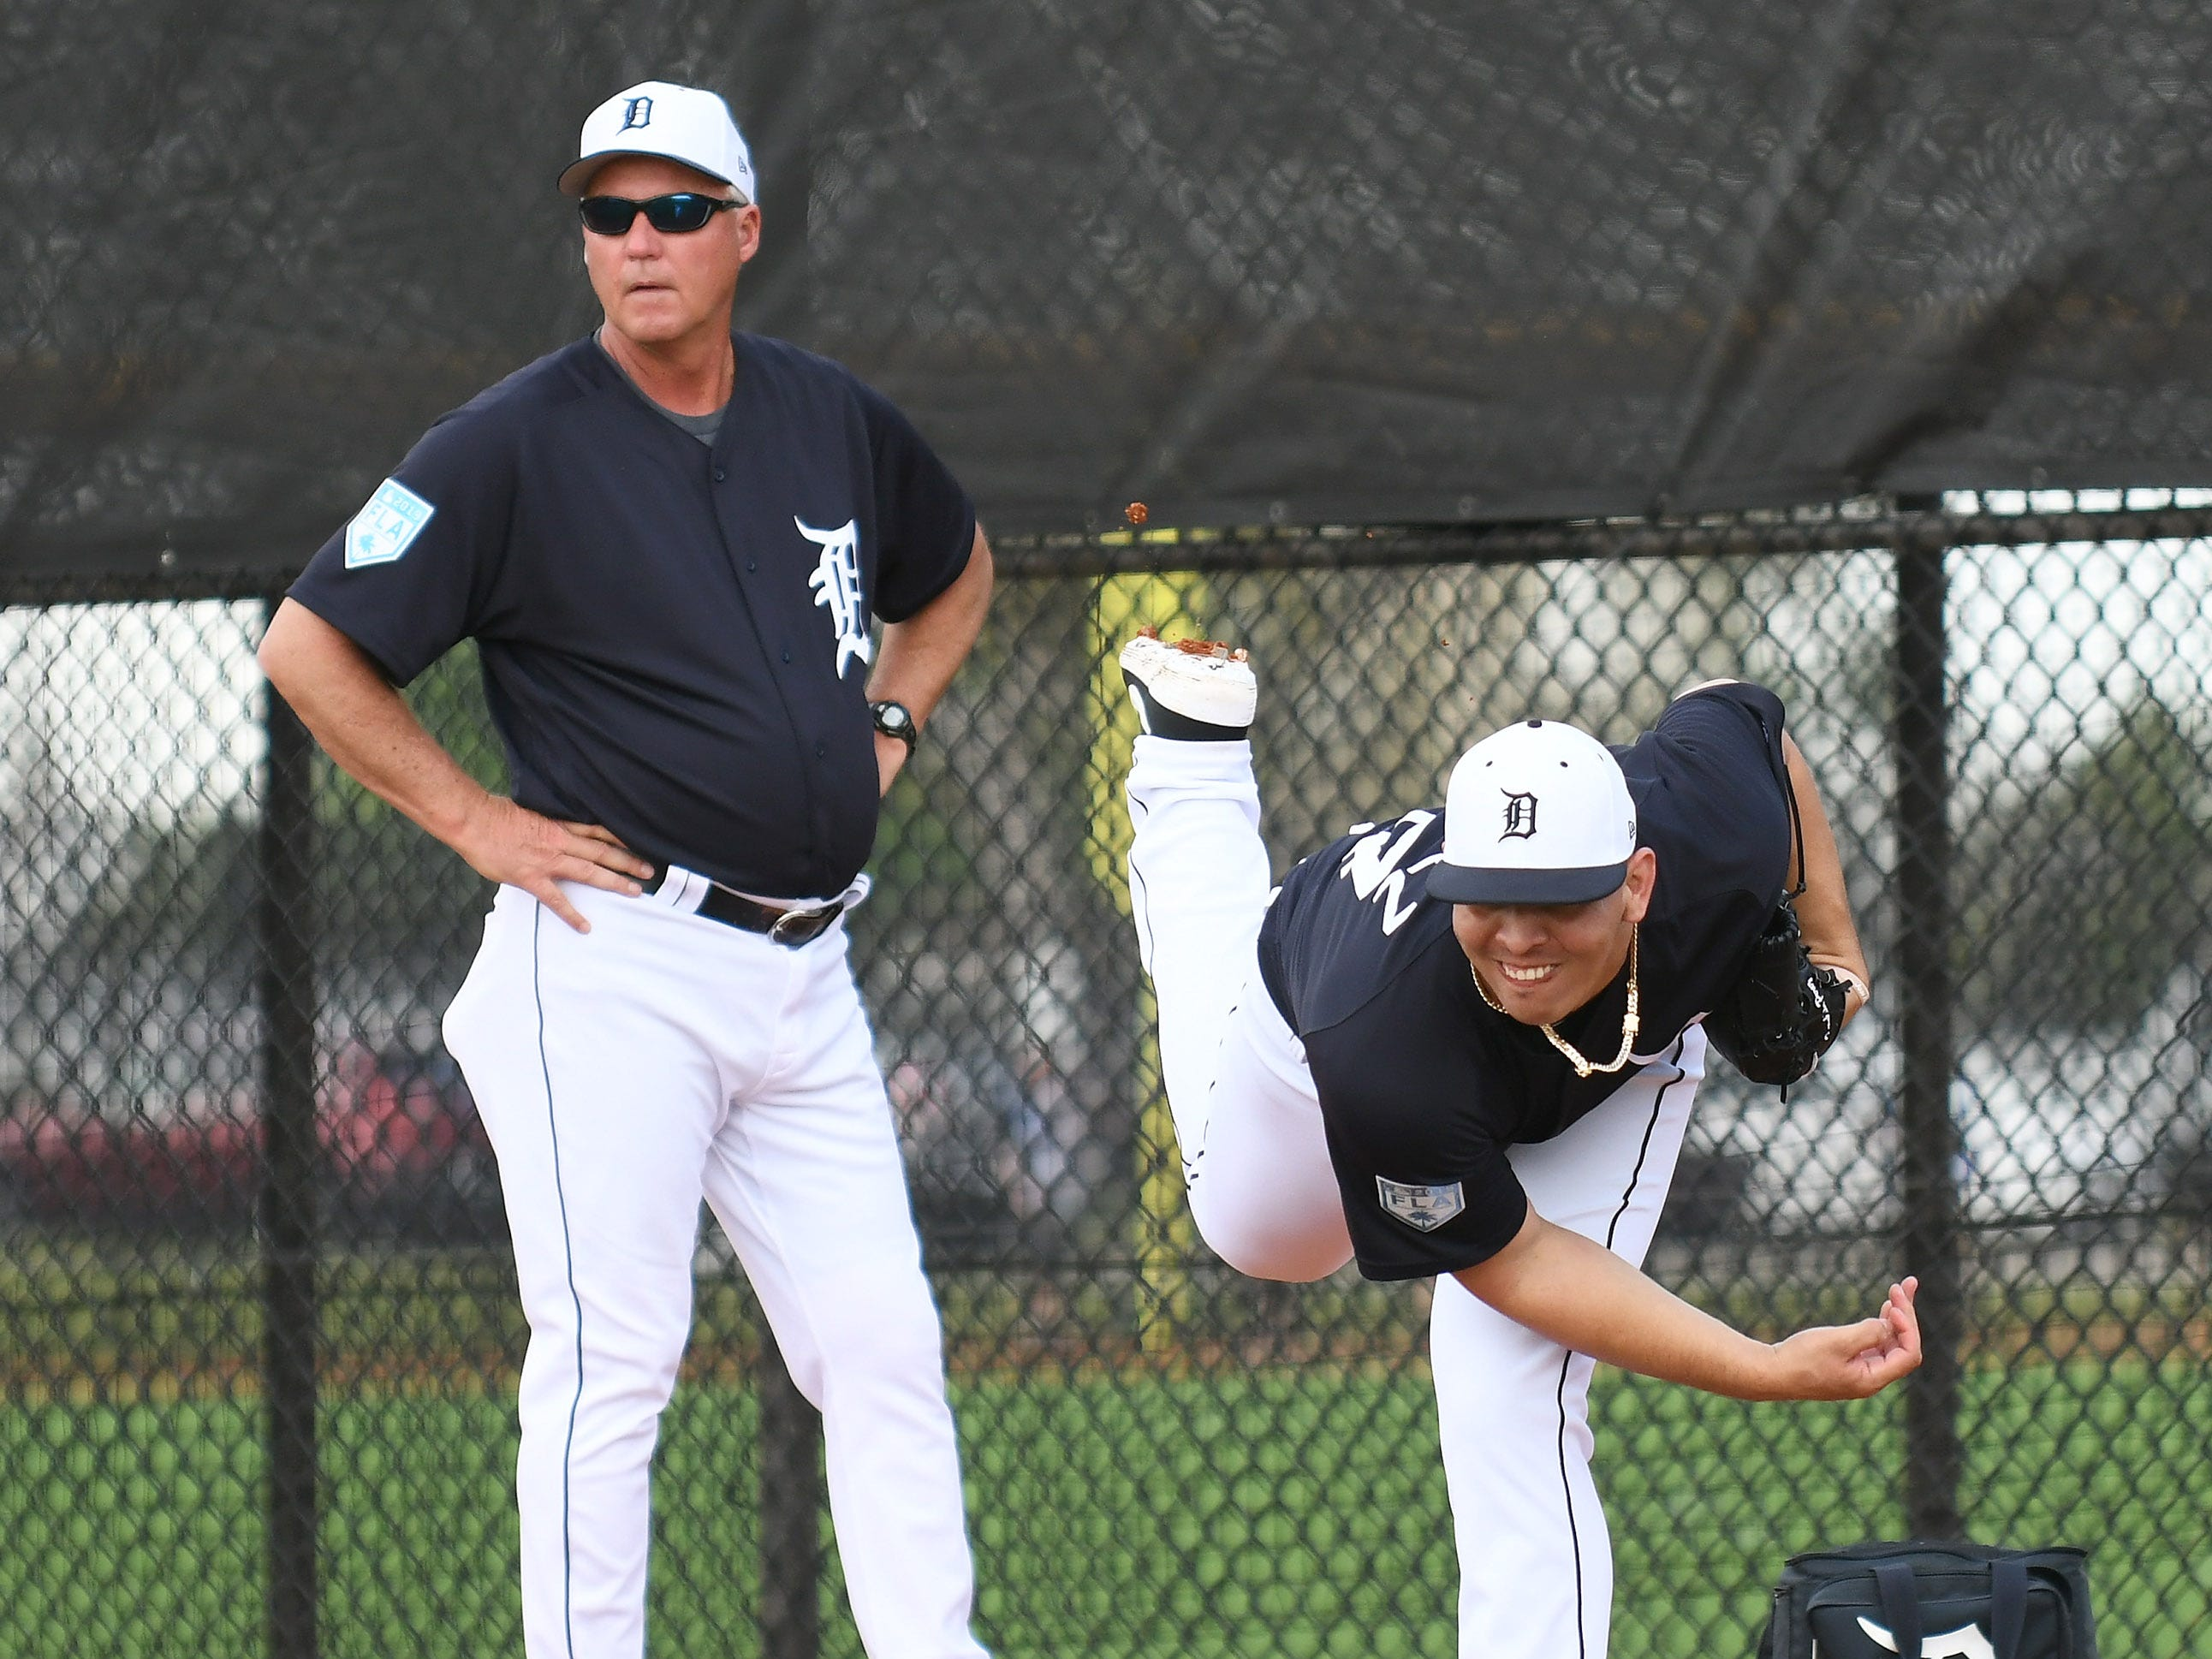 Tigers pitching coach Rick Anderson, left, watches pitcher Franklin Perez work in the bullpen.